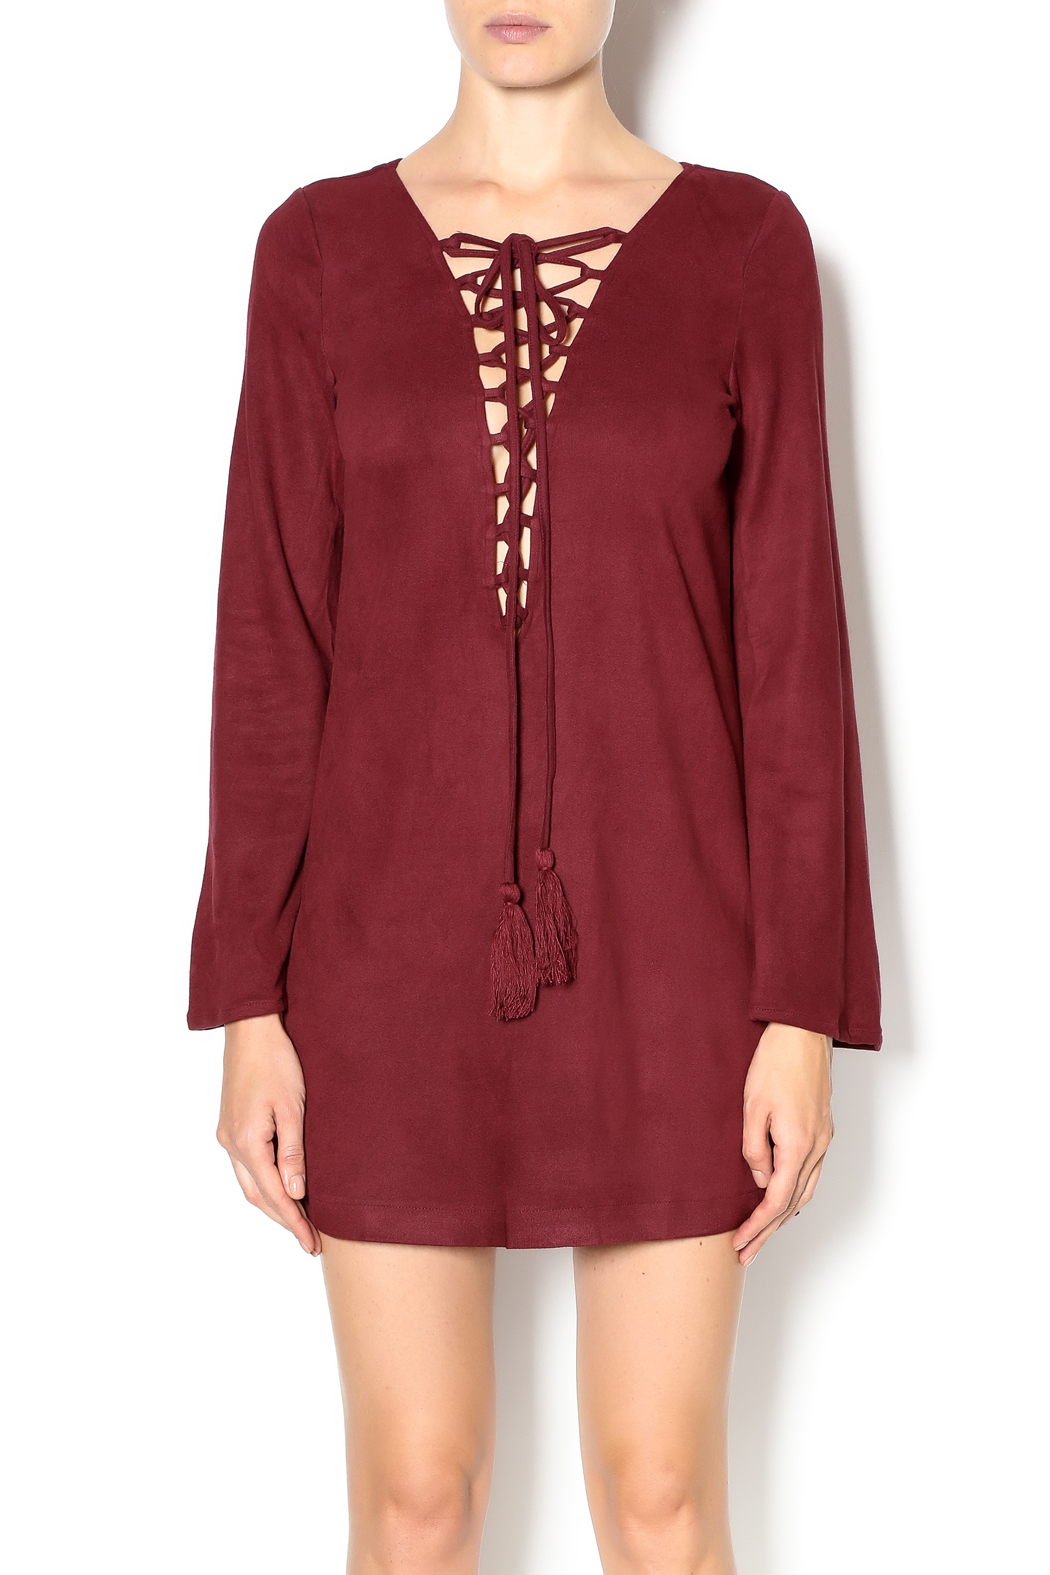 Olivaceous Faux Suede Lace-Up Dress - Main Image